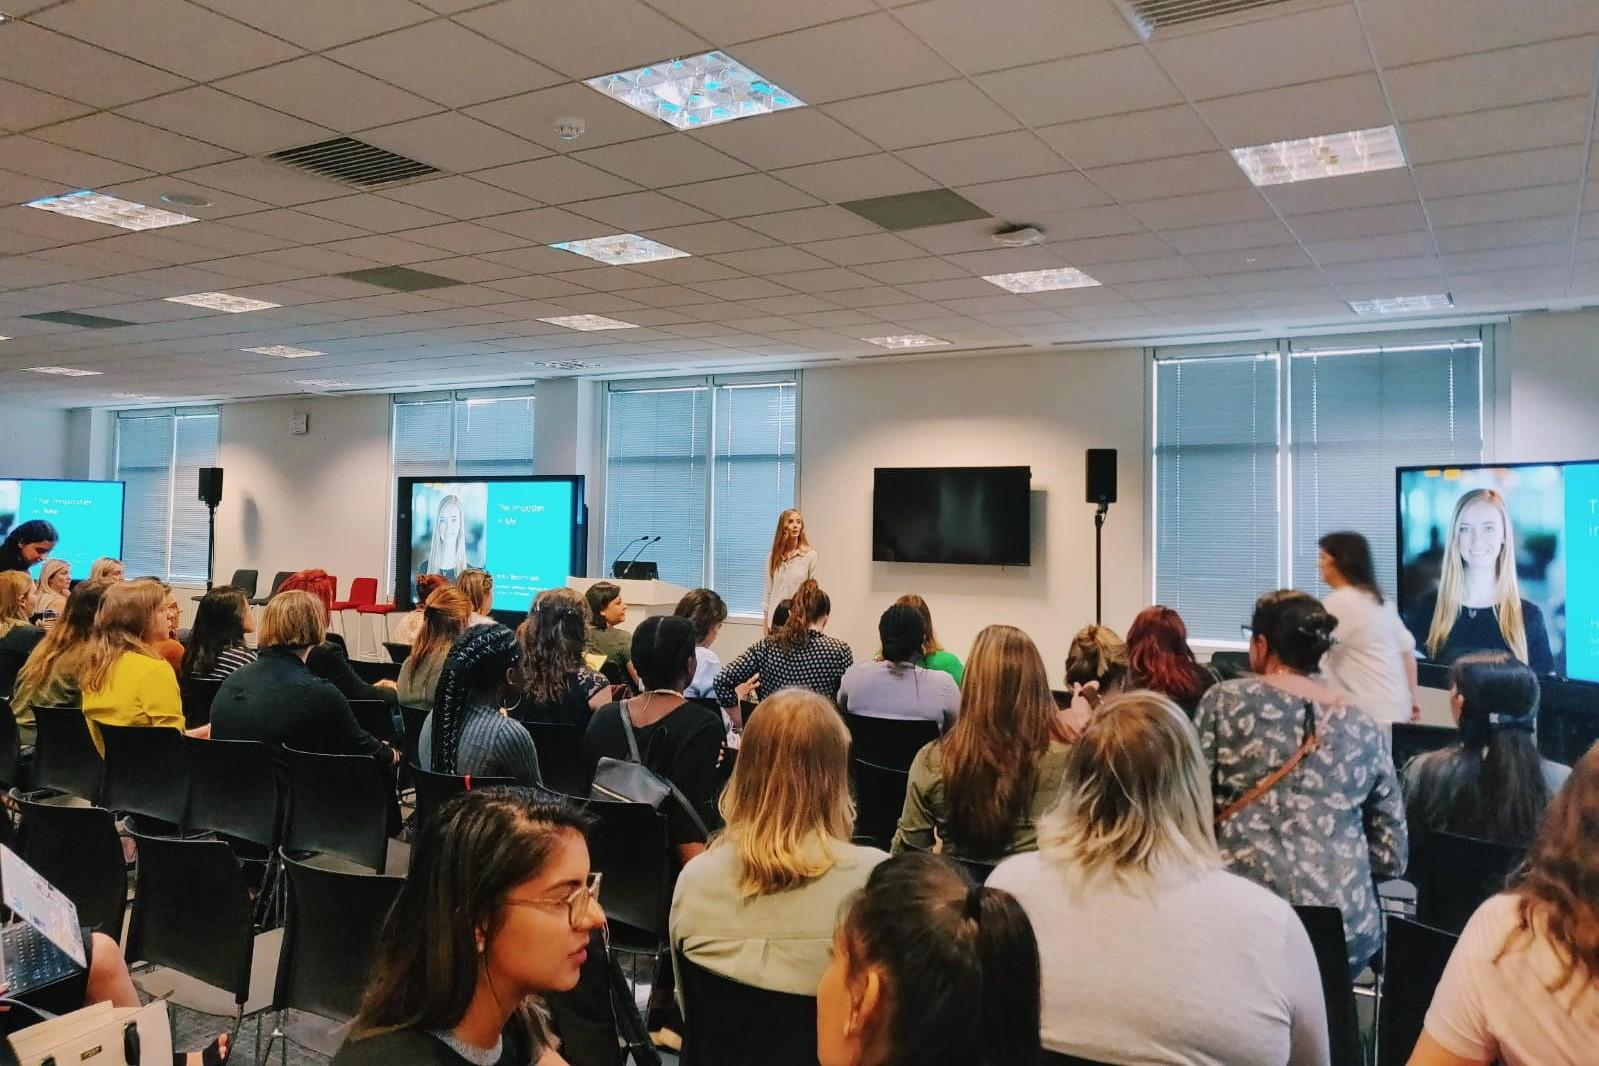 Holly Presenting at Microsoft's TechHer about Imposter Syndrome